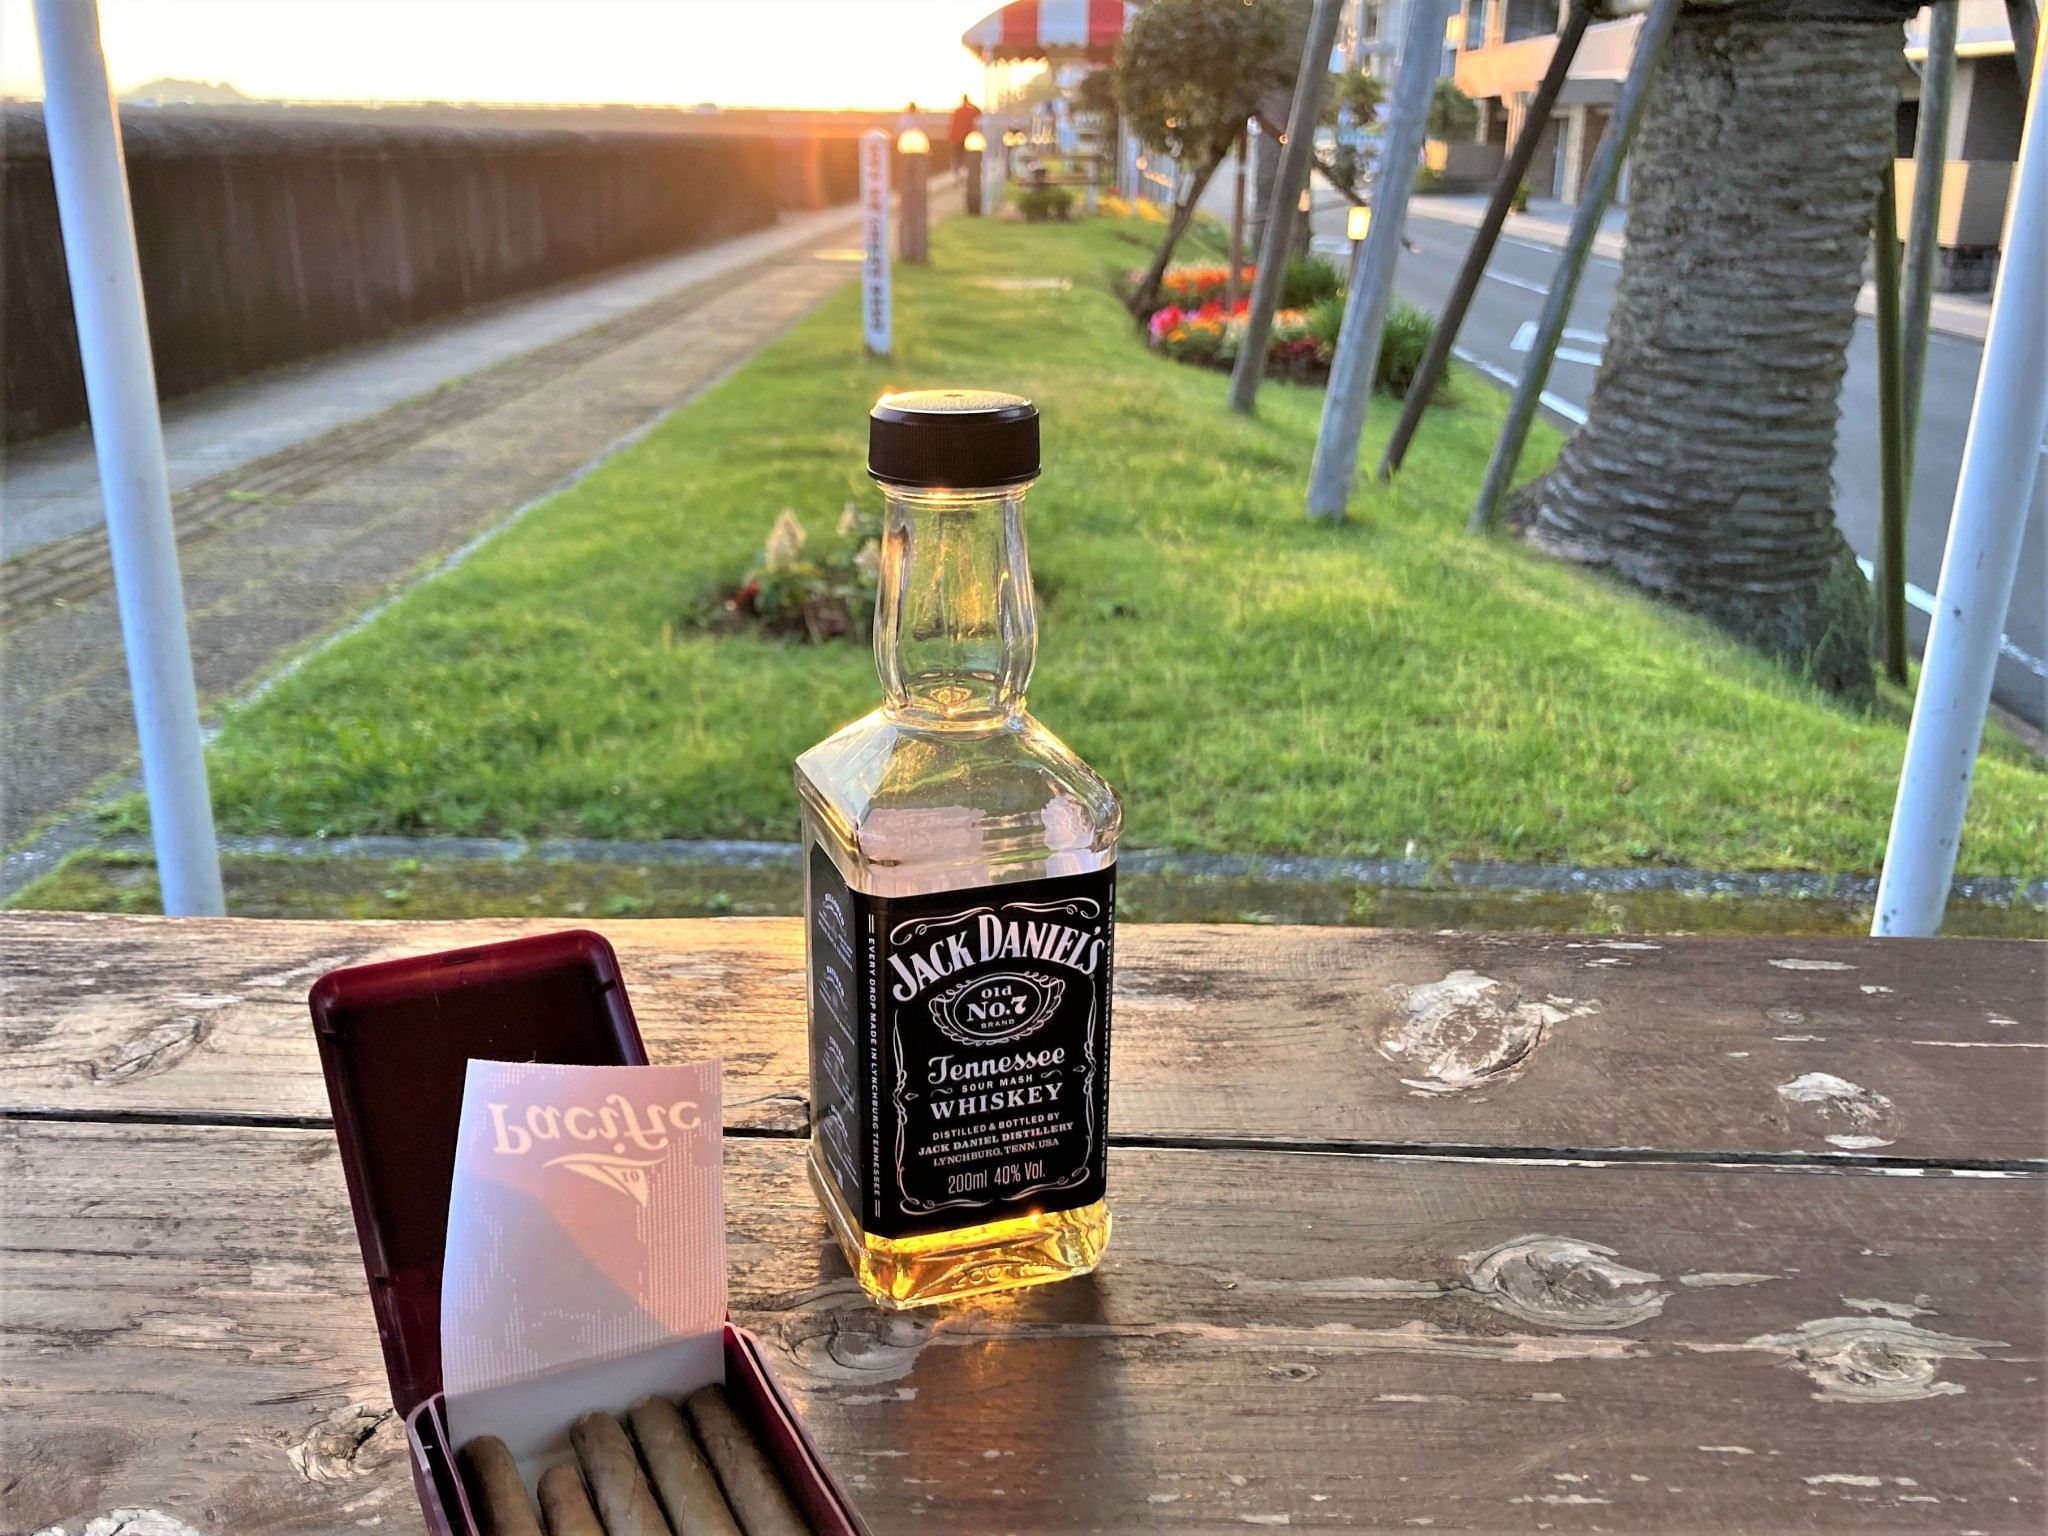 A bottle of whisky and packet of cigars on a wooden table in front of green grass at sunset.